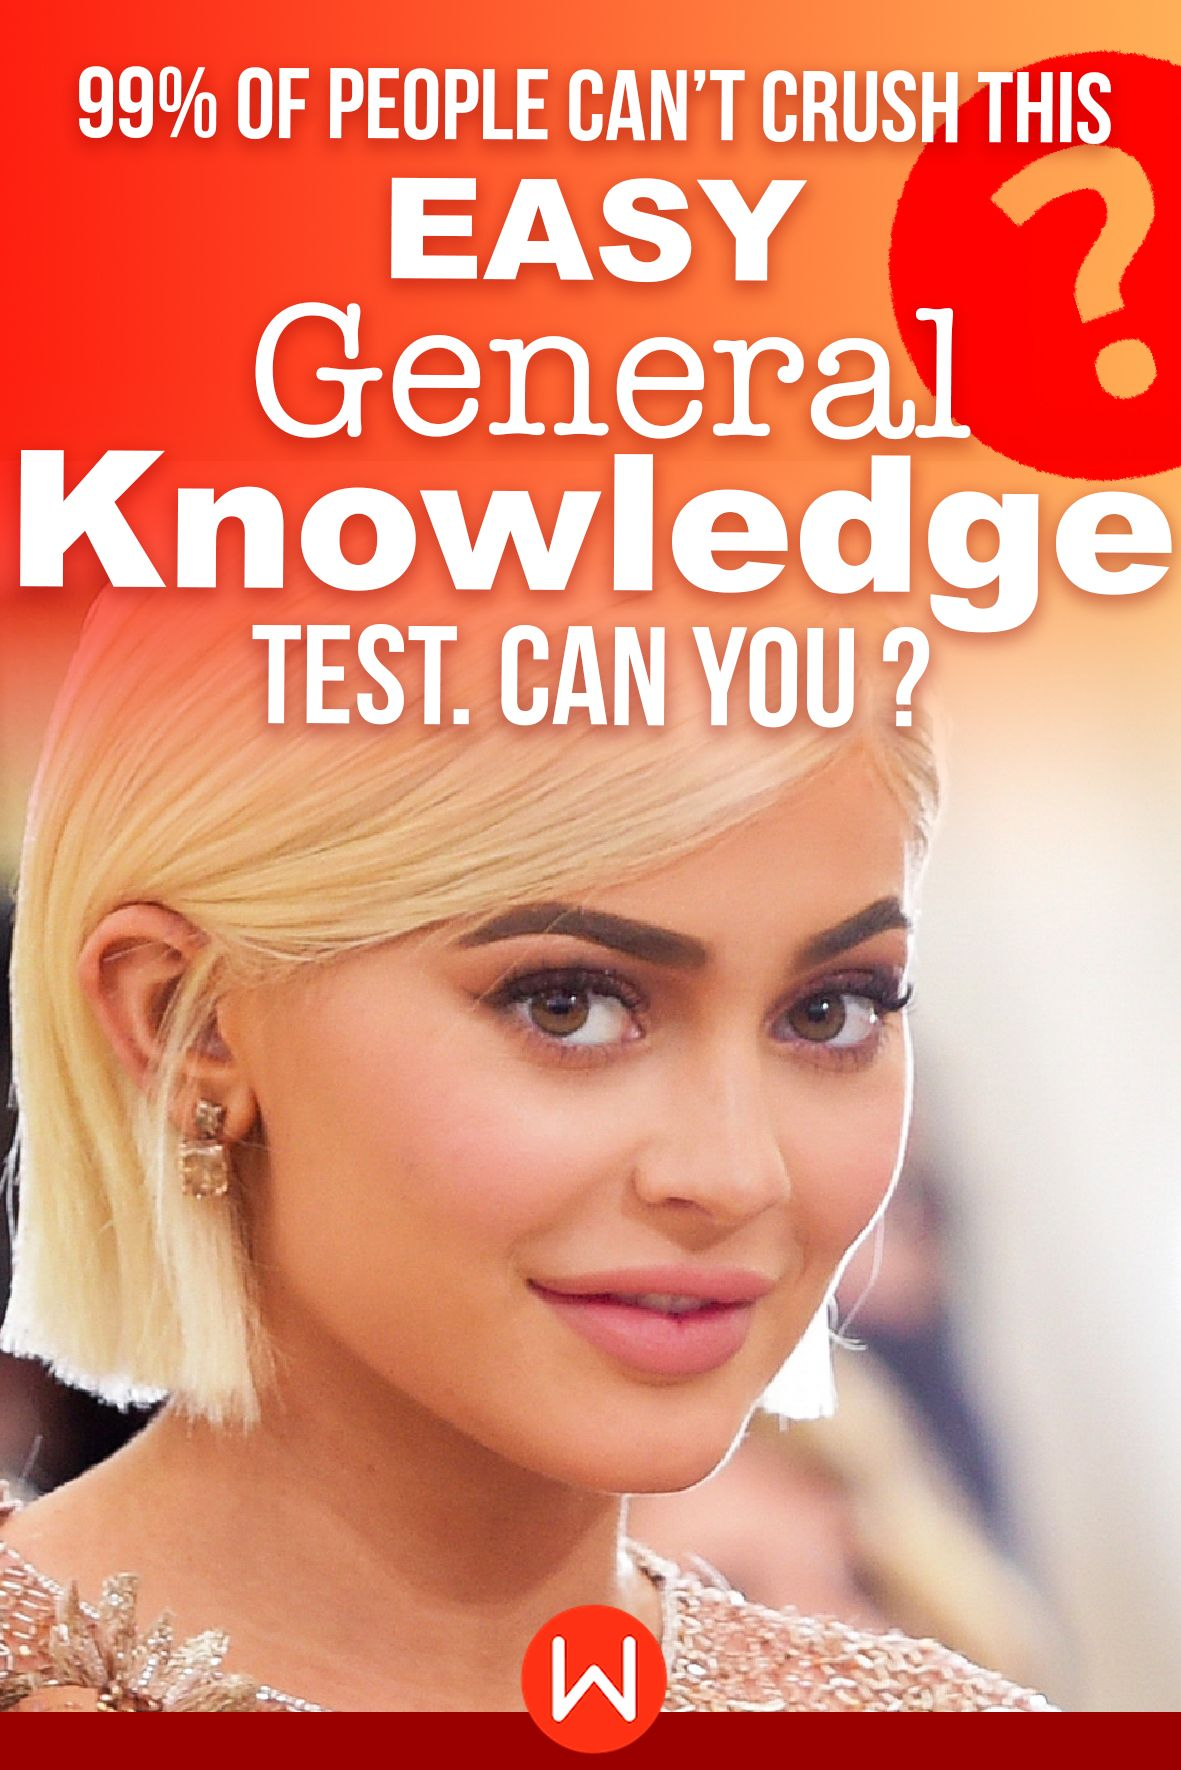 Quiz: 99% Of People Can't Crush This Easy General Knowledge Test Can